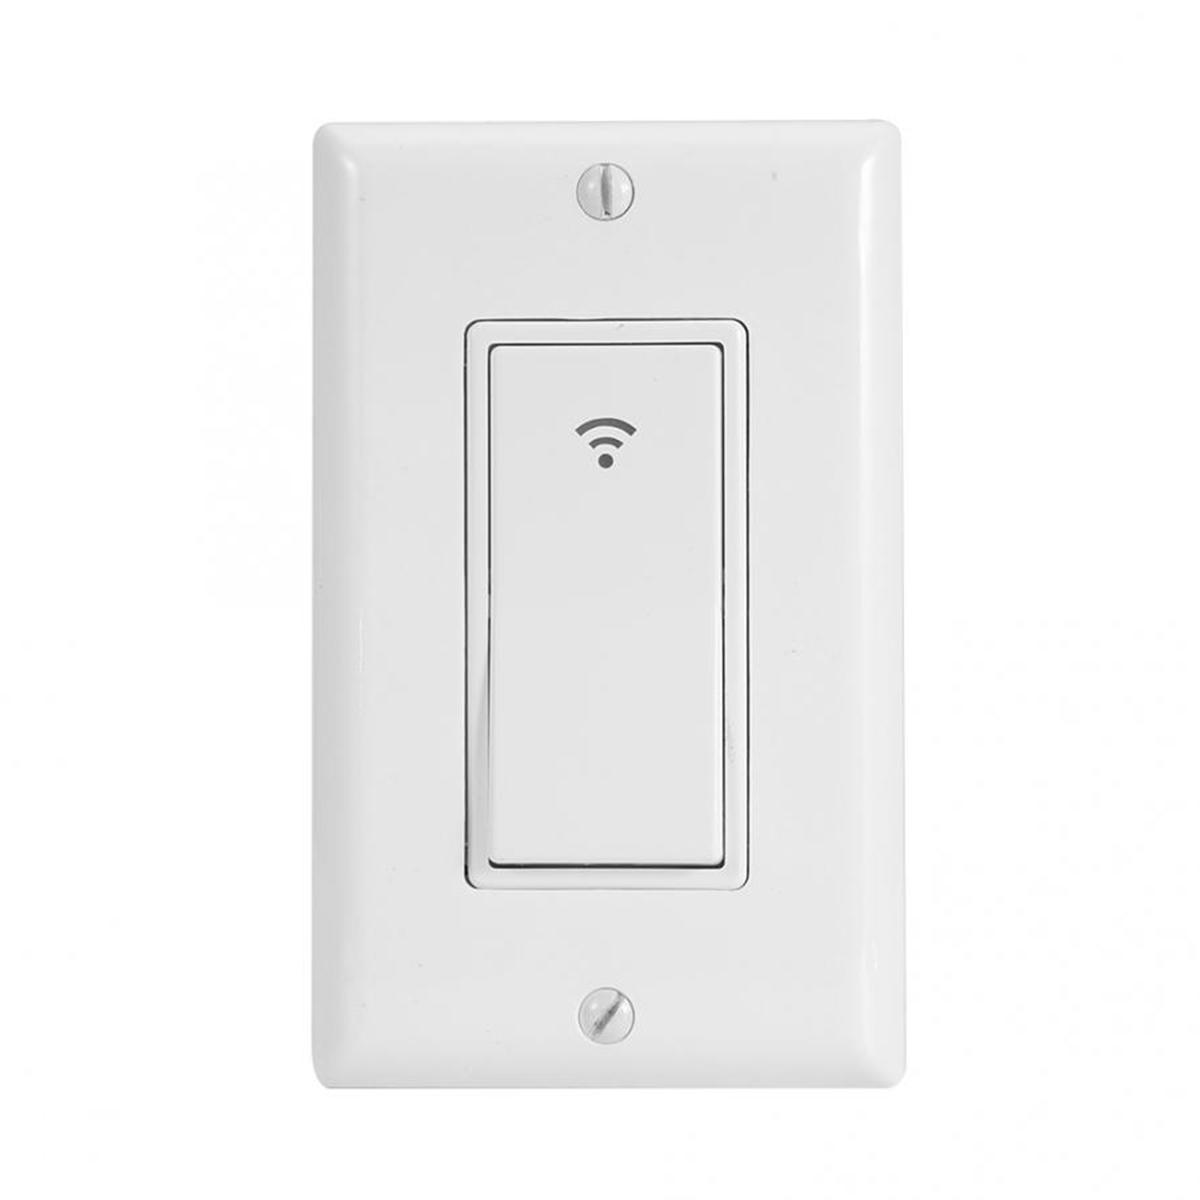 WiFi Smart Wall Light Wireless Touch Panel Switch App Timing for Alexa Google Home Remote Control